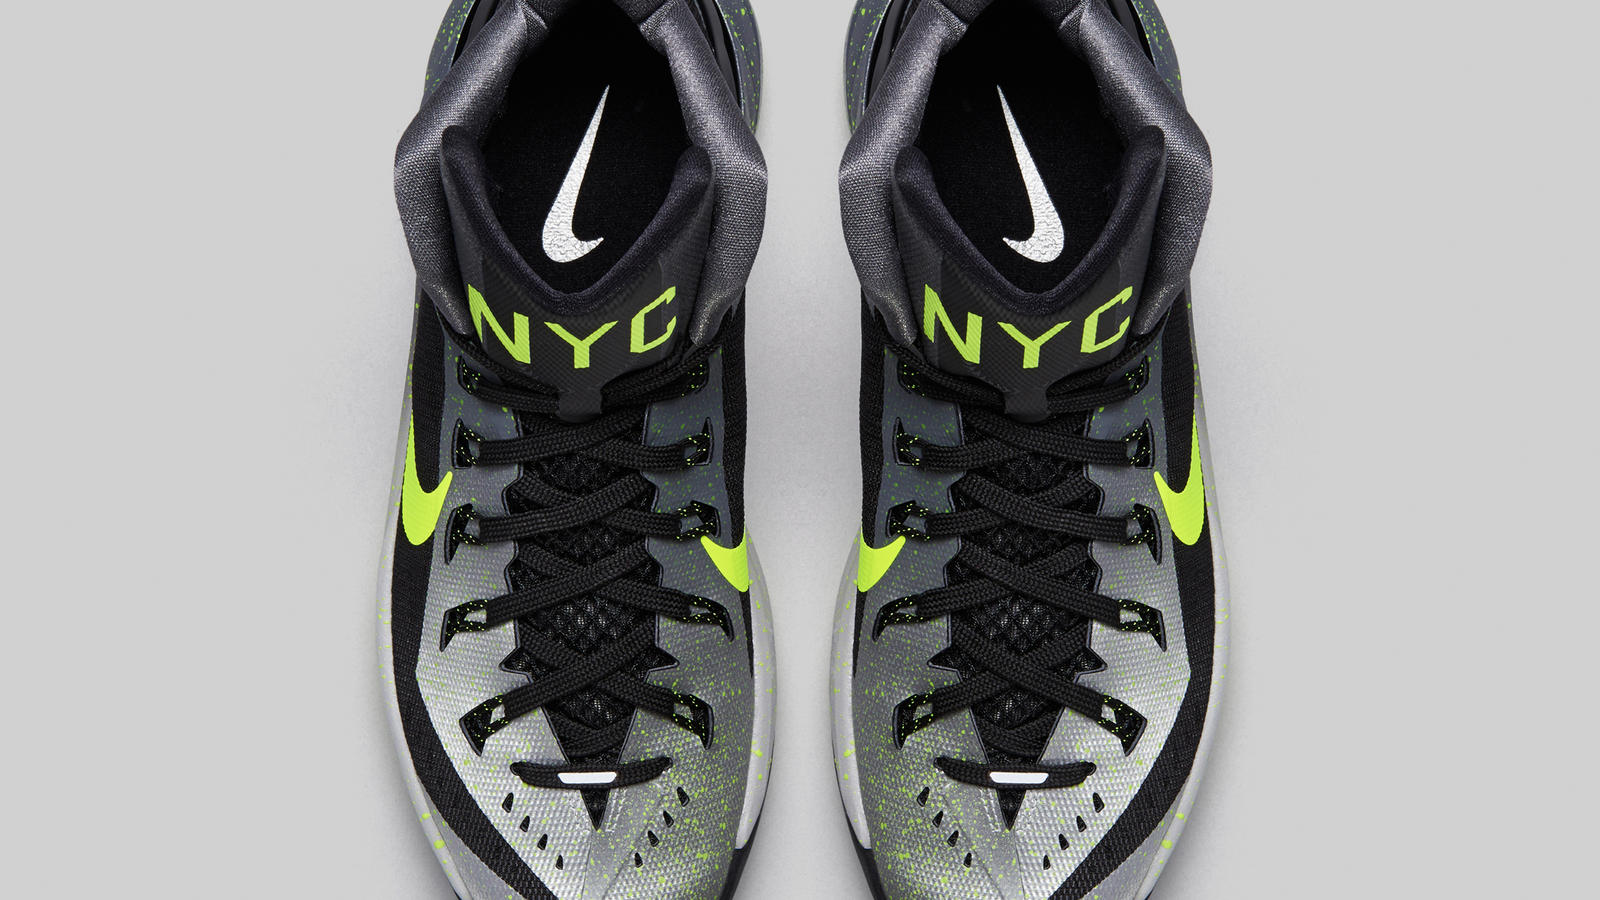 2014 hyperdunk_nyc_top_